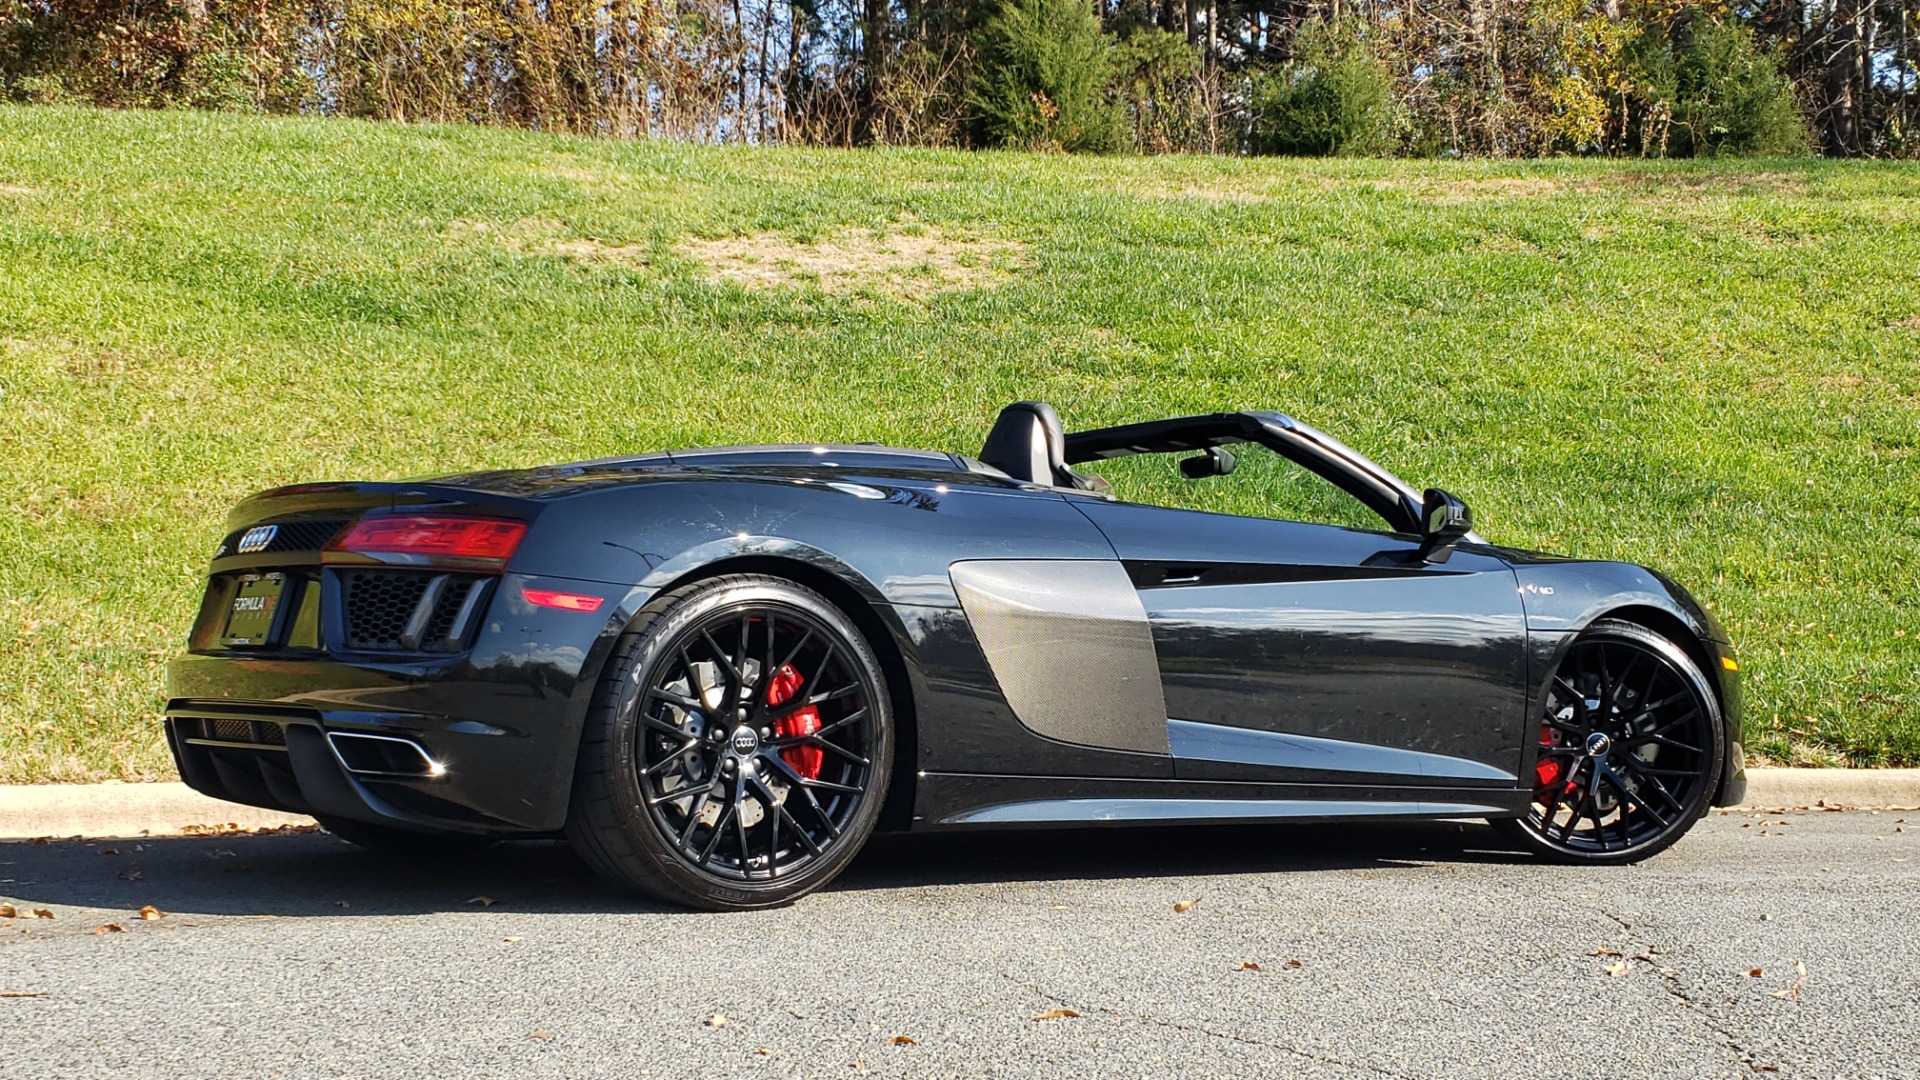 Used 2017 Audi R8 SPYDER V10 S-TRONIC / CARBON EXT & INT PKG / NAV / REARVIEW for sale Sold at Formula Imports in Charlotte NC 28227 11